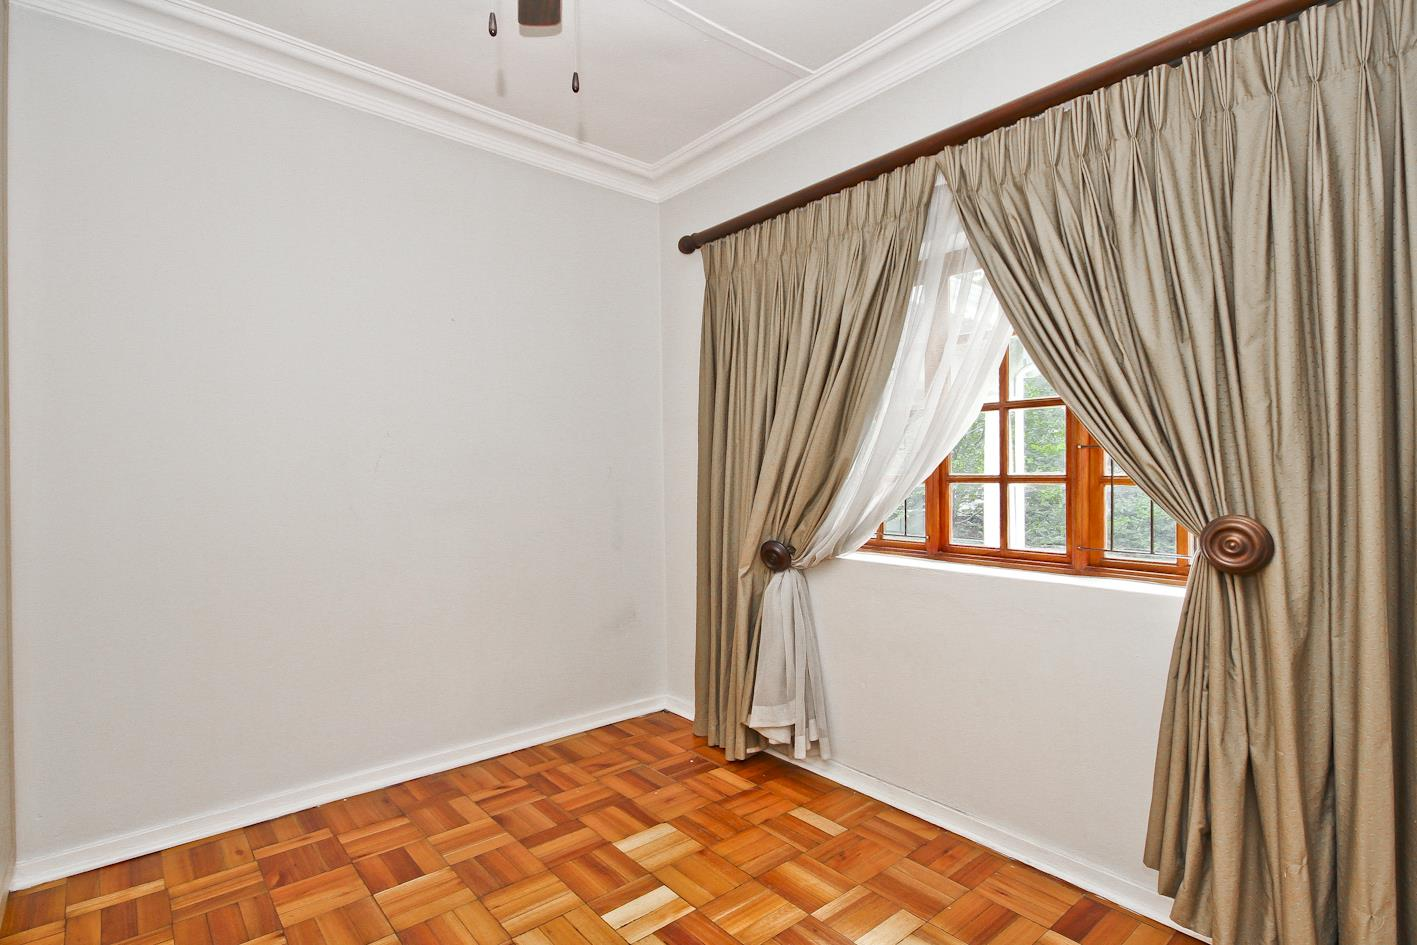 4 Bedroom House For Sale in Lakeside